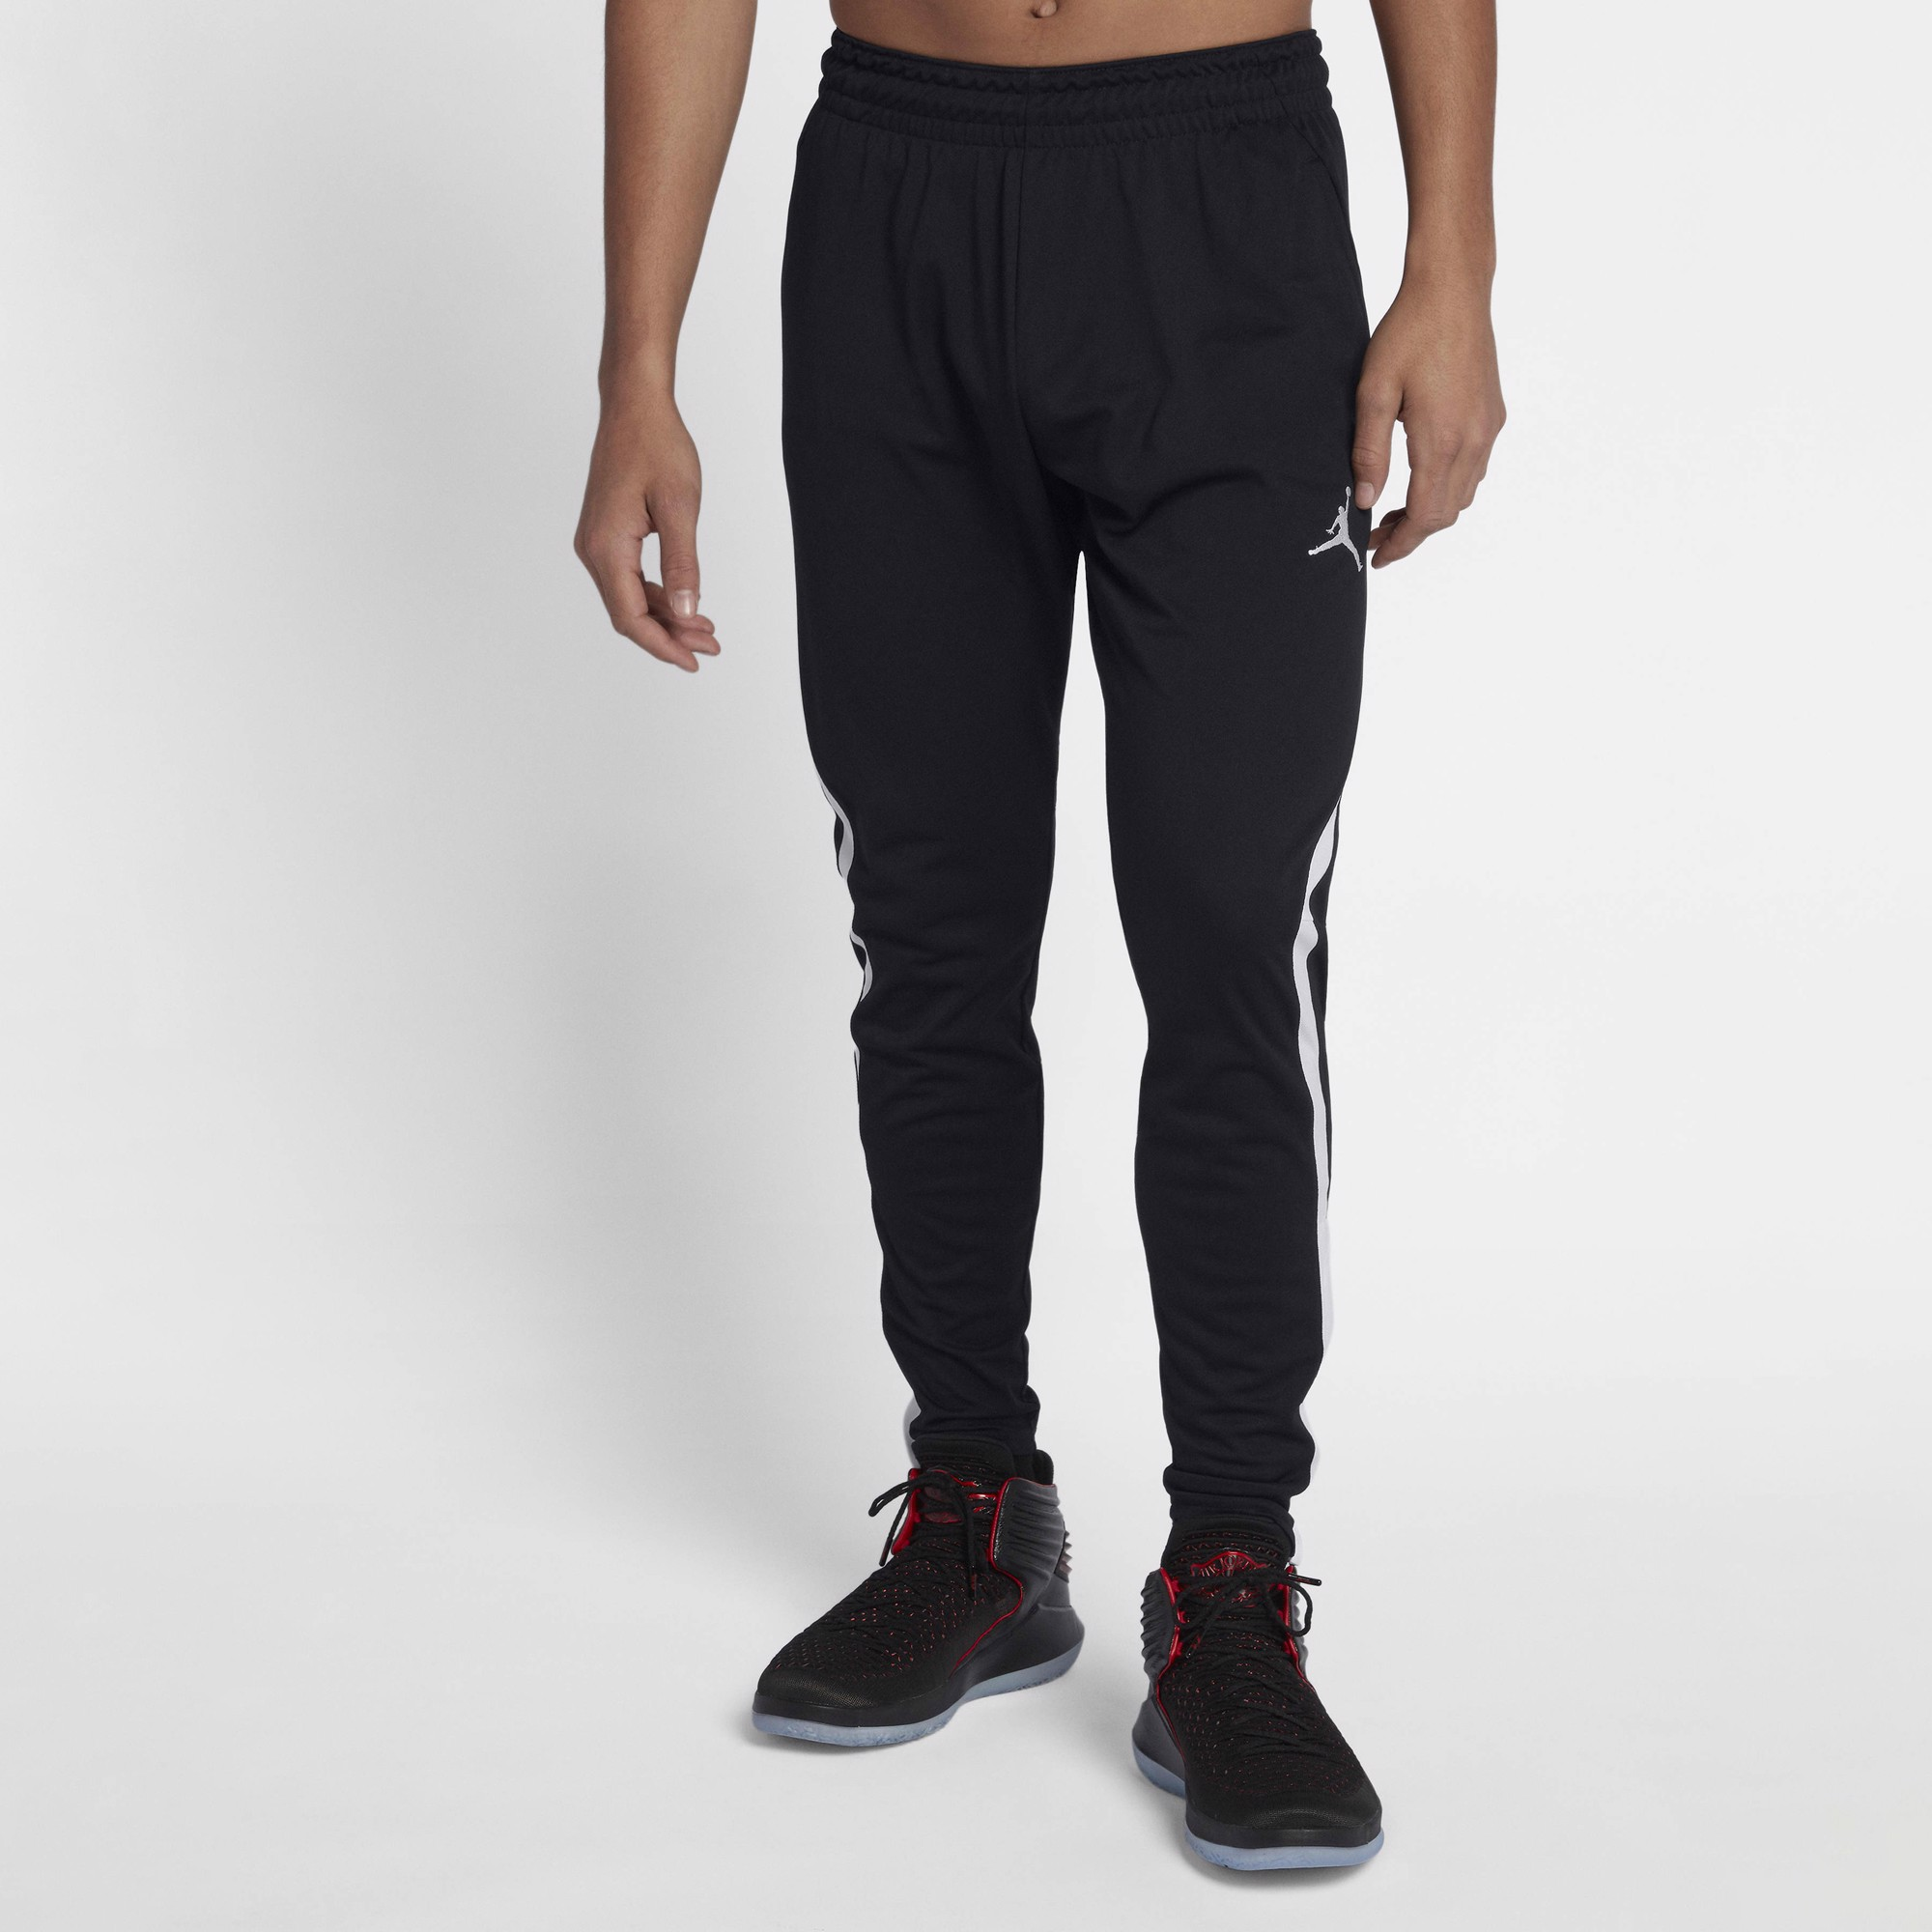 Jordan Dri-FIT 23 Alpha Basketball Pants 'Black/White'